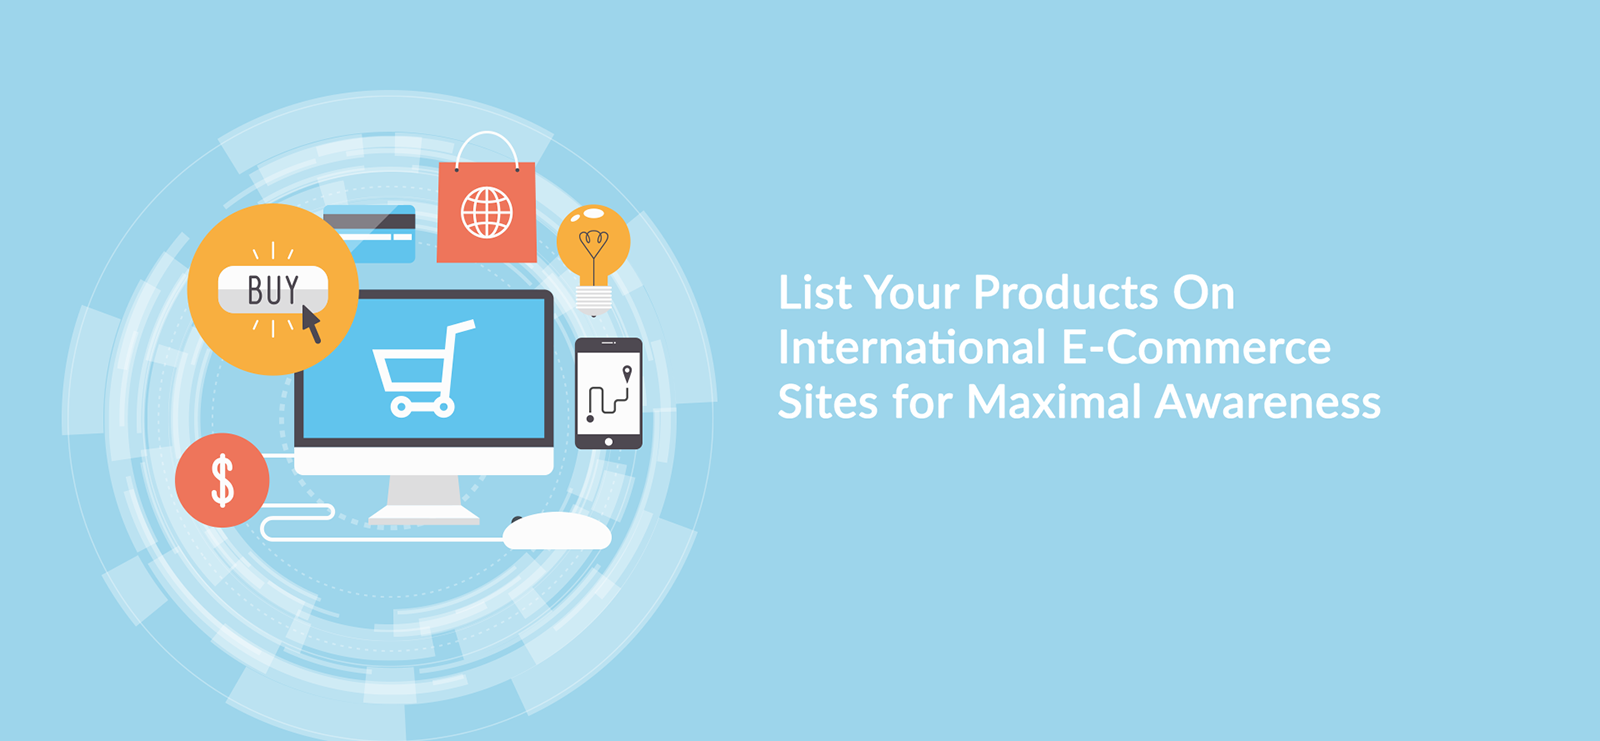 list-your-products-on-international-ecommerce